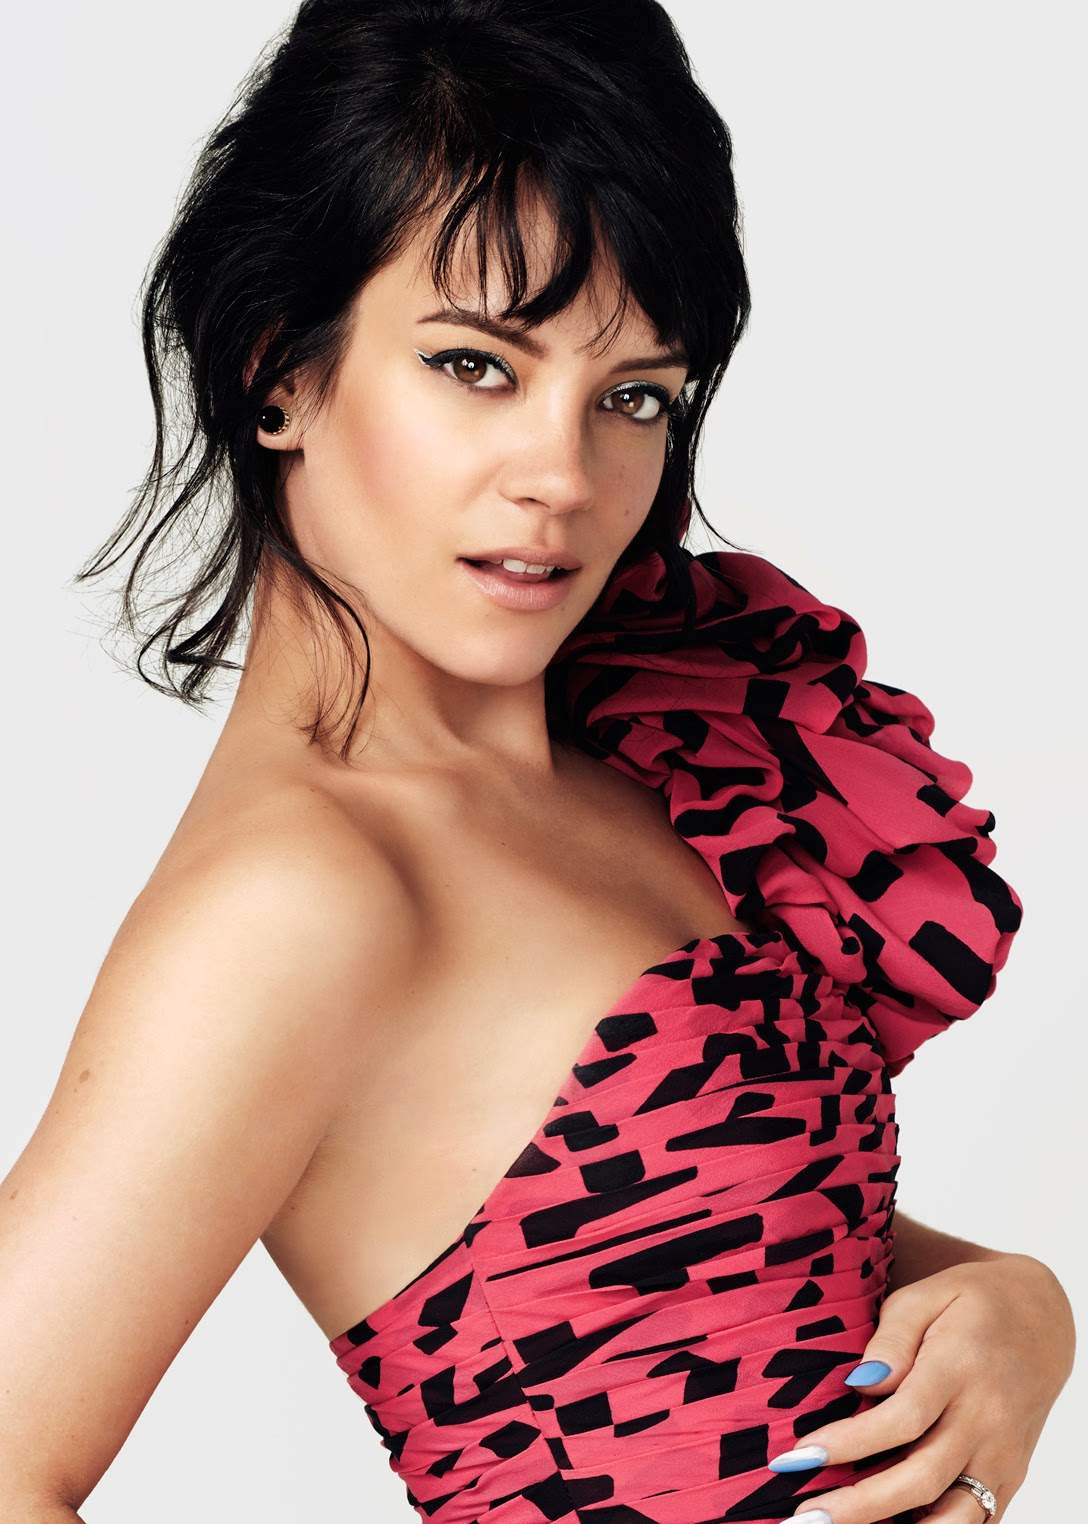 Lily Allen Damon Heath PS for Glamour UK June 2014